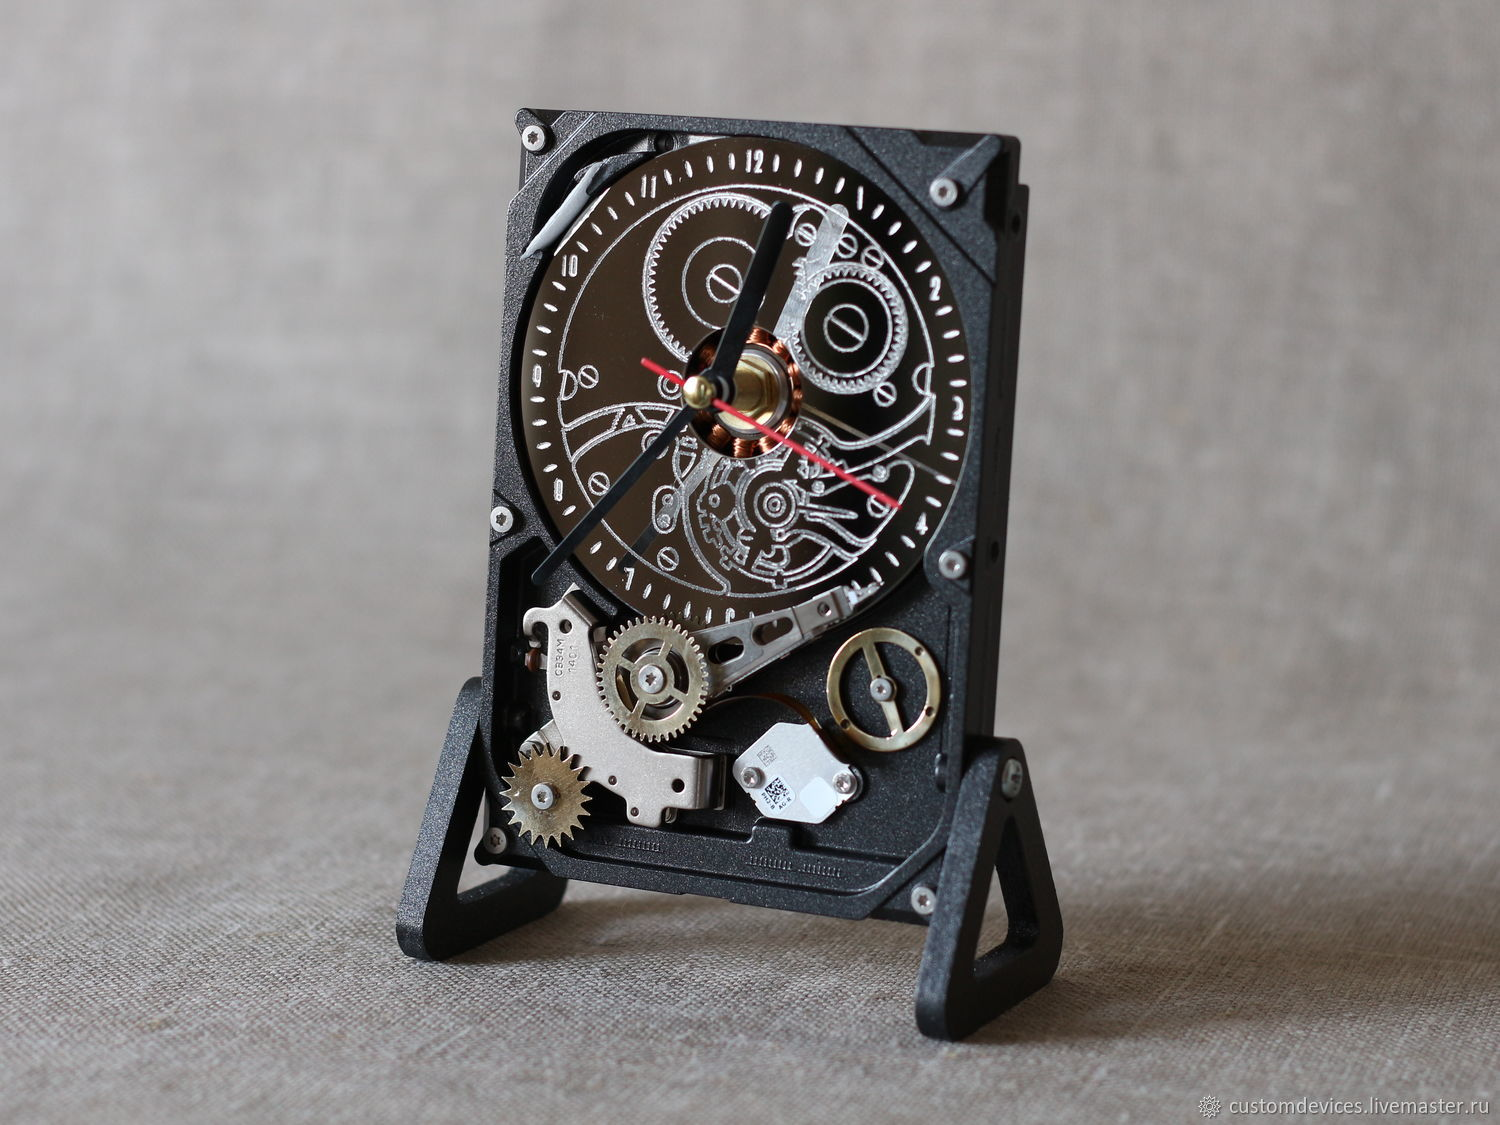 Watch from hard disk # №7 (Steampunk, graphite color), Watch, Moscow,  Фото №1